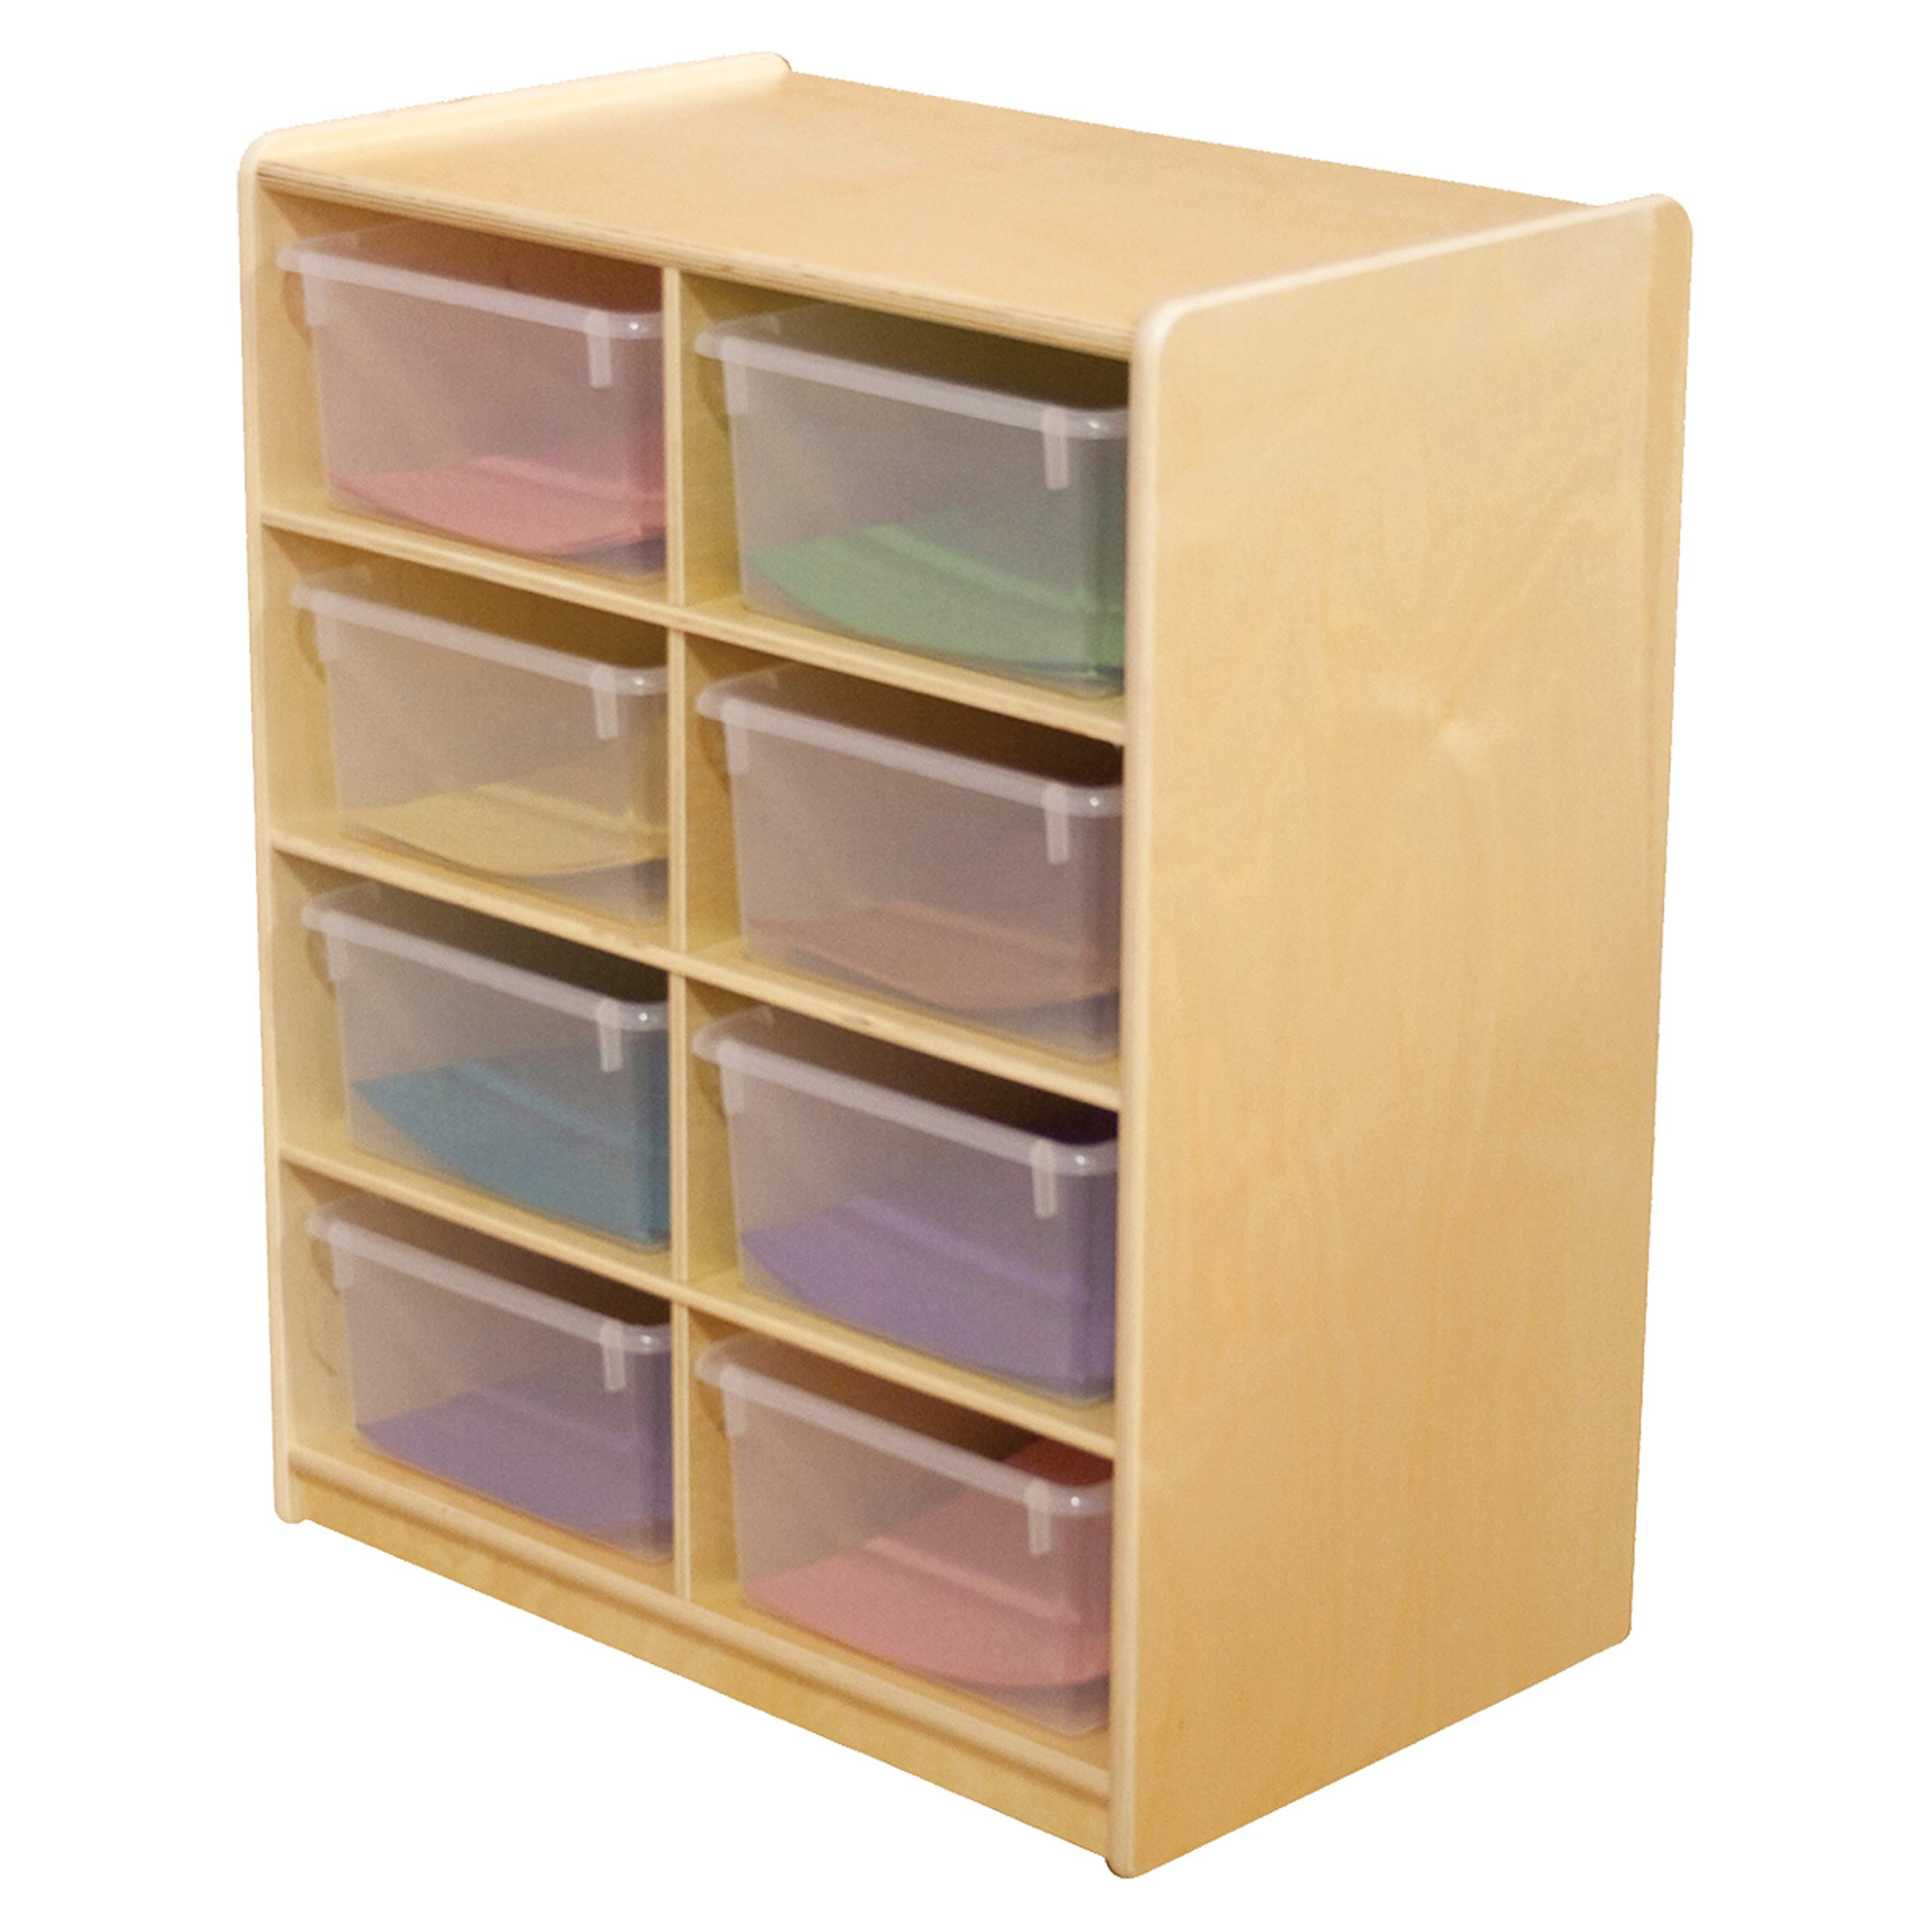 Wood Designs (8) 5'' Letter Tray Storage Unit with Translucent Trays